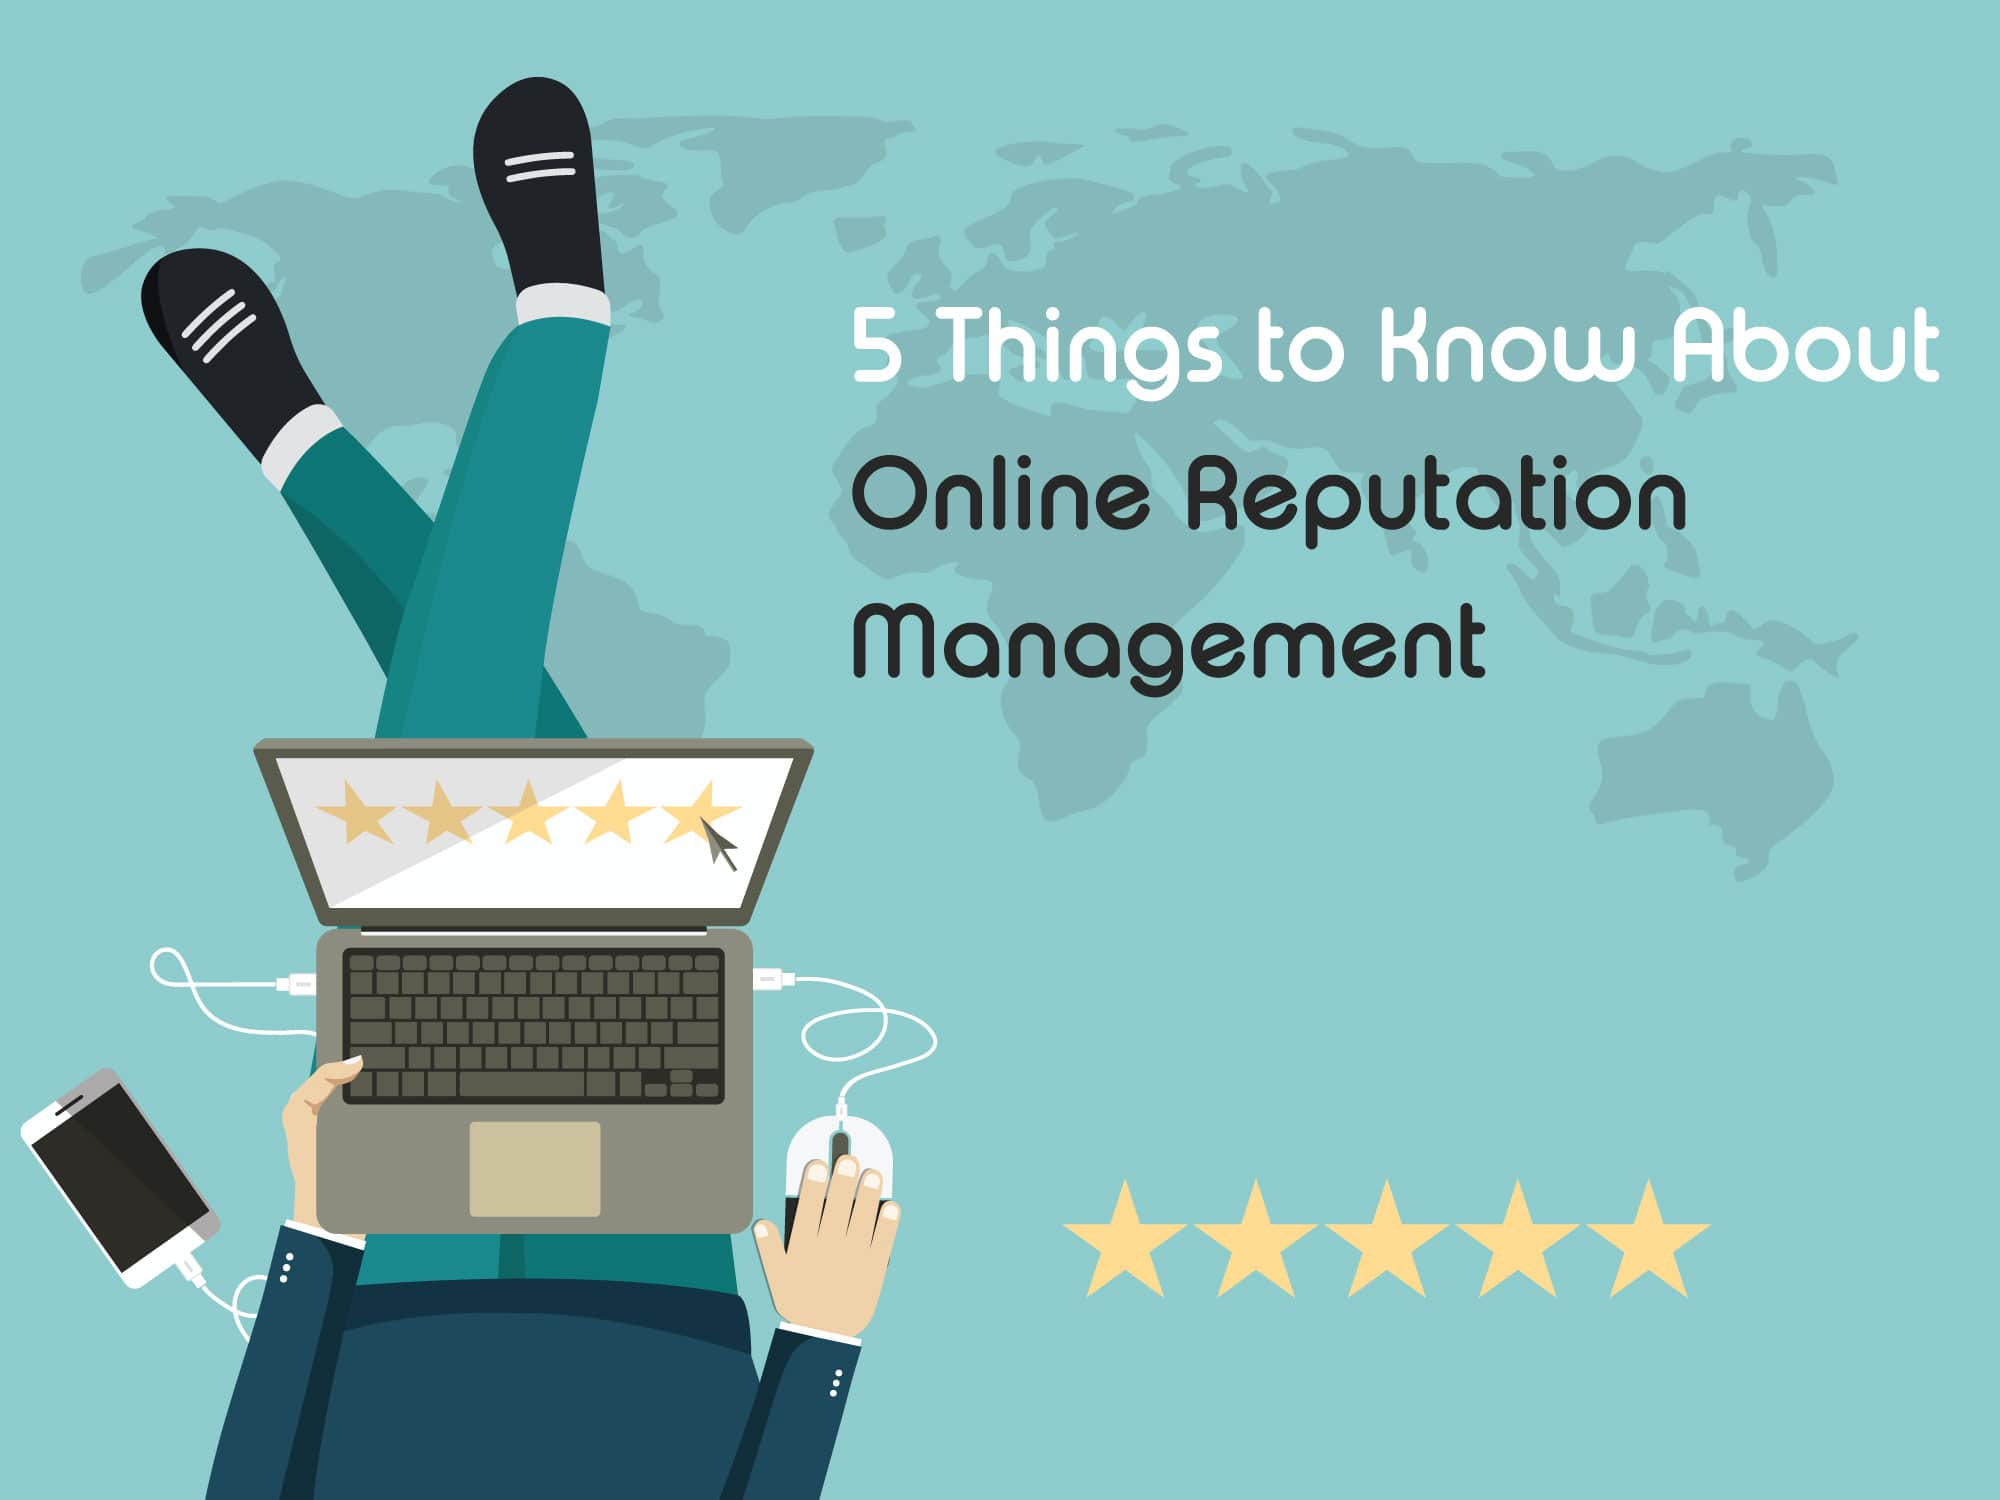 5 Things to Know About Online Reputation Management